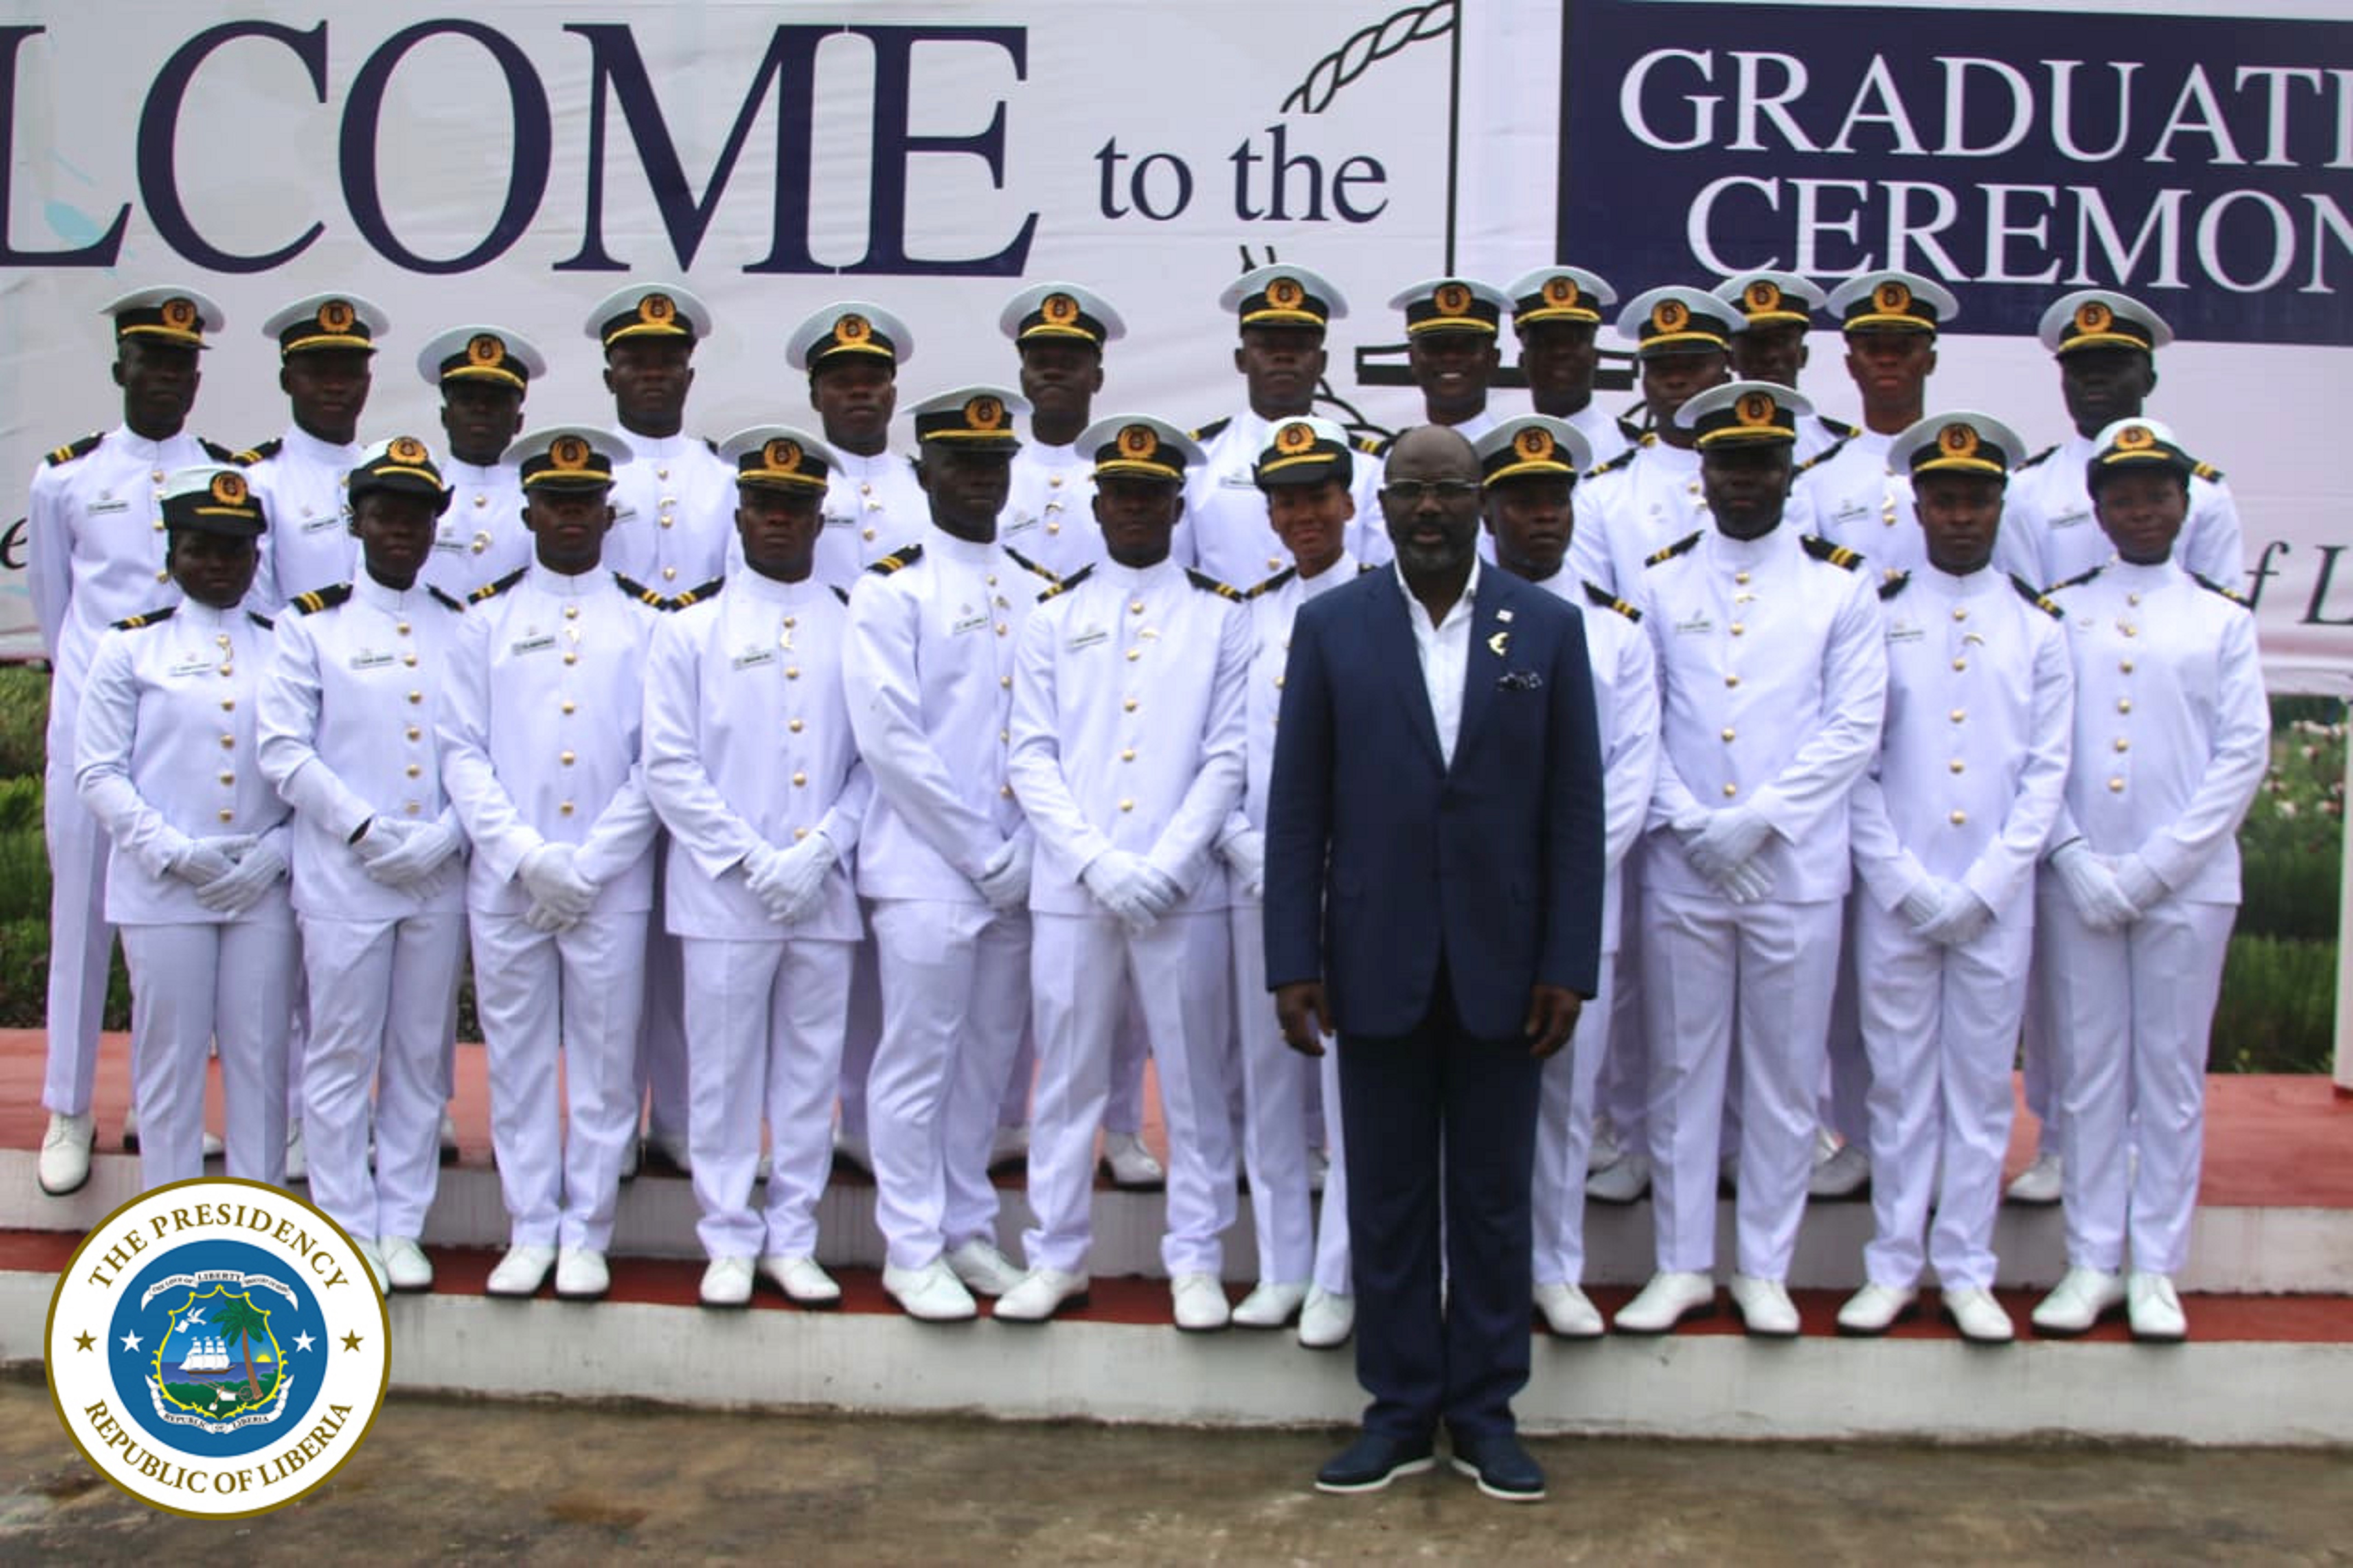 President Weah poses with graduates from the Liberia Maritime Training Institute